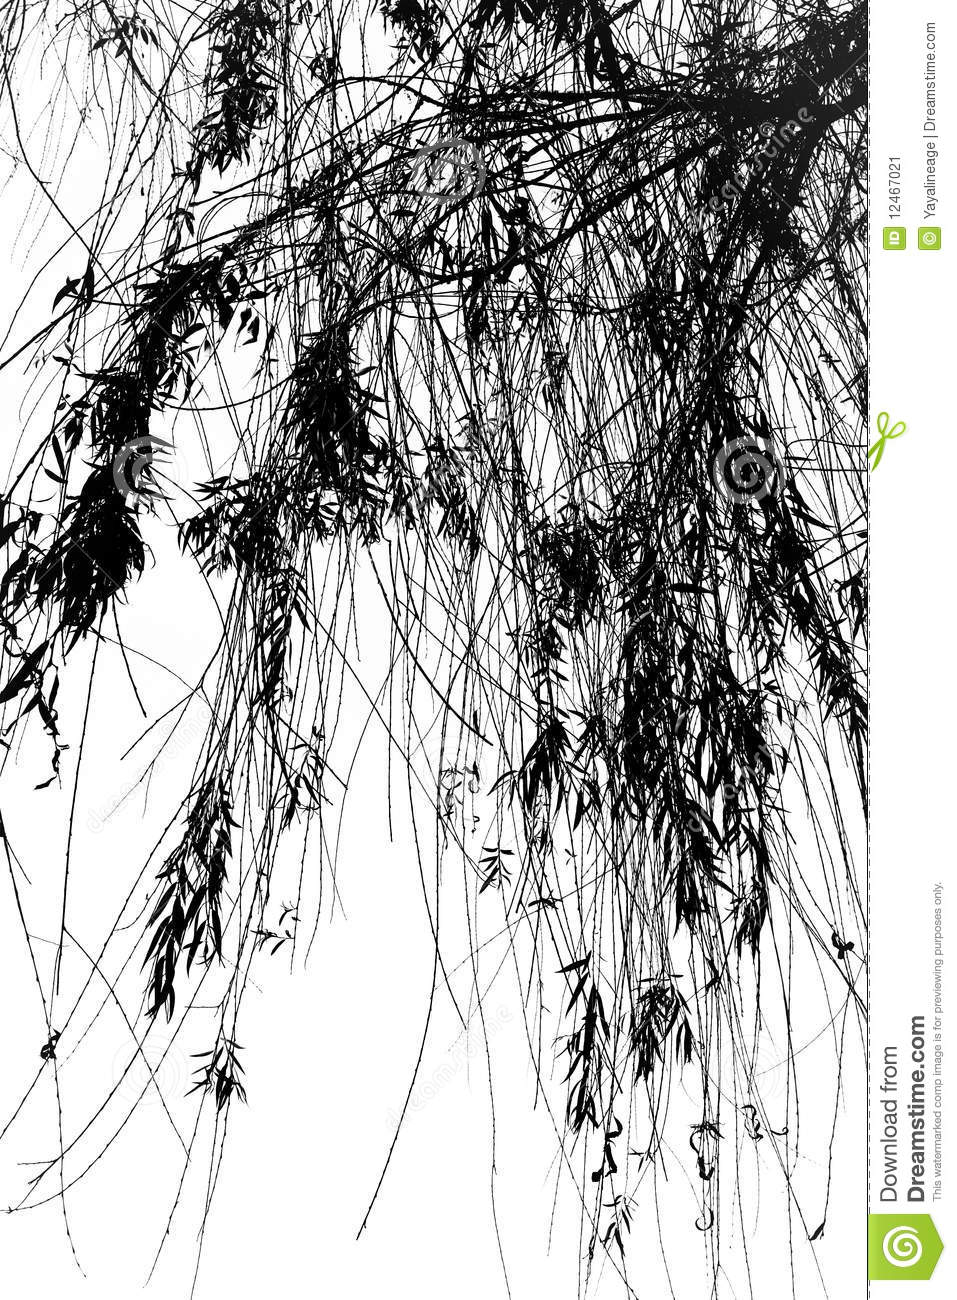 Star Clipart Droopy Tree Branches S...